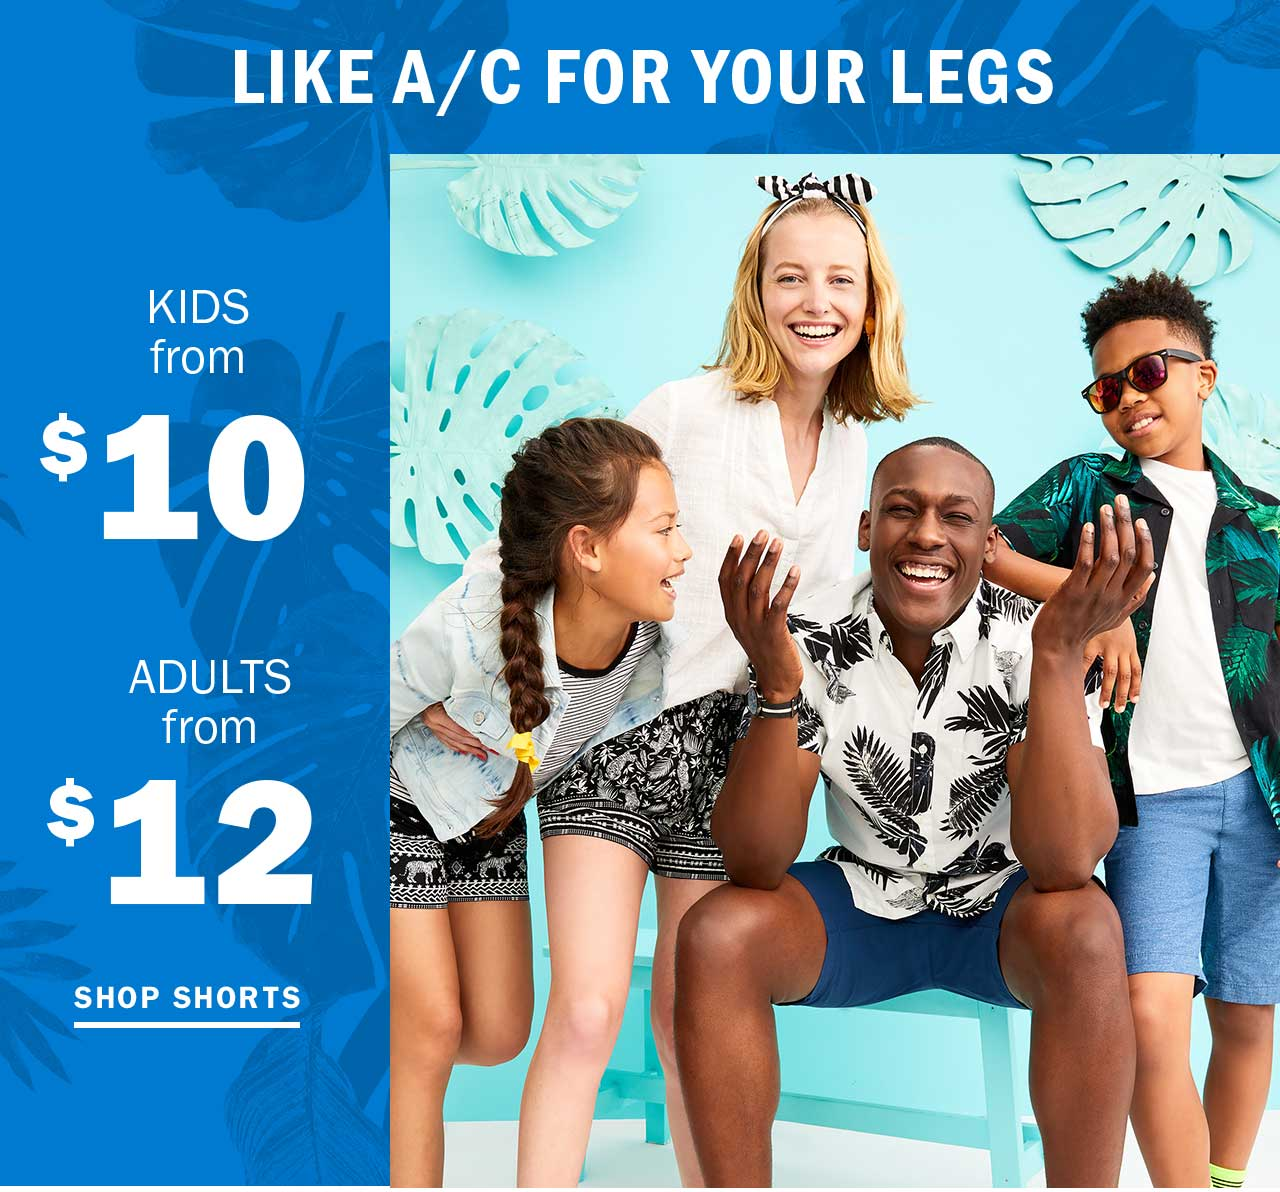 LIKE A/C FOR YOUR LEGS | SHOP SHORTS